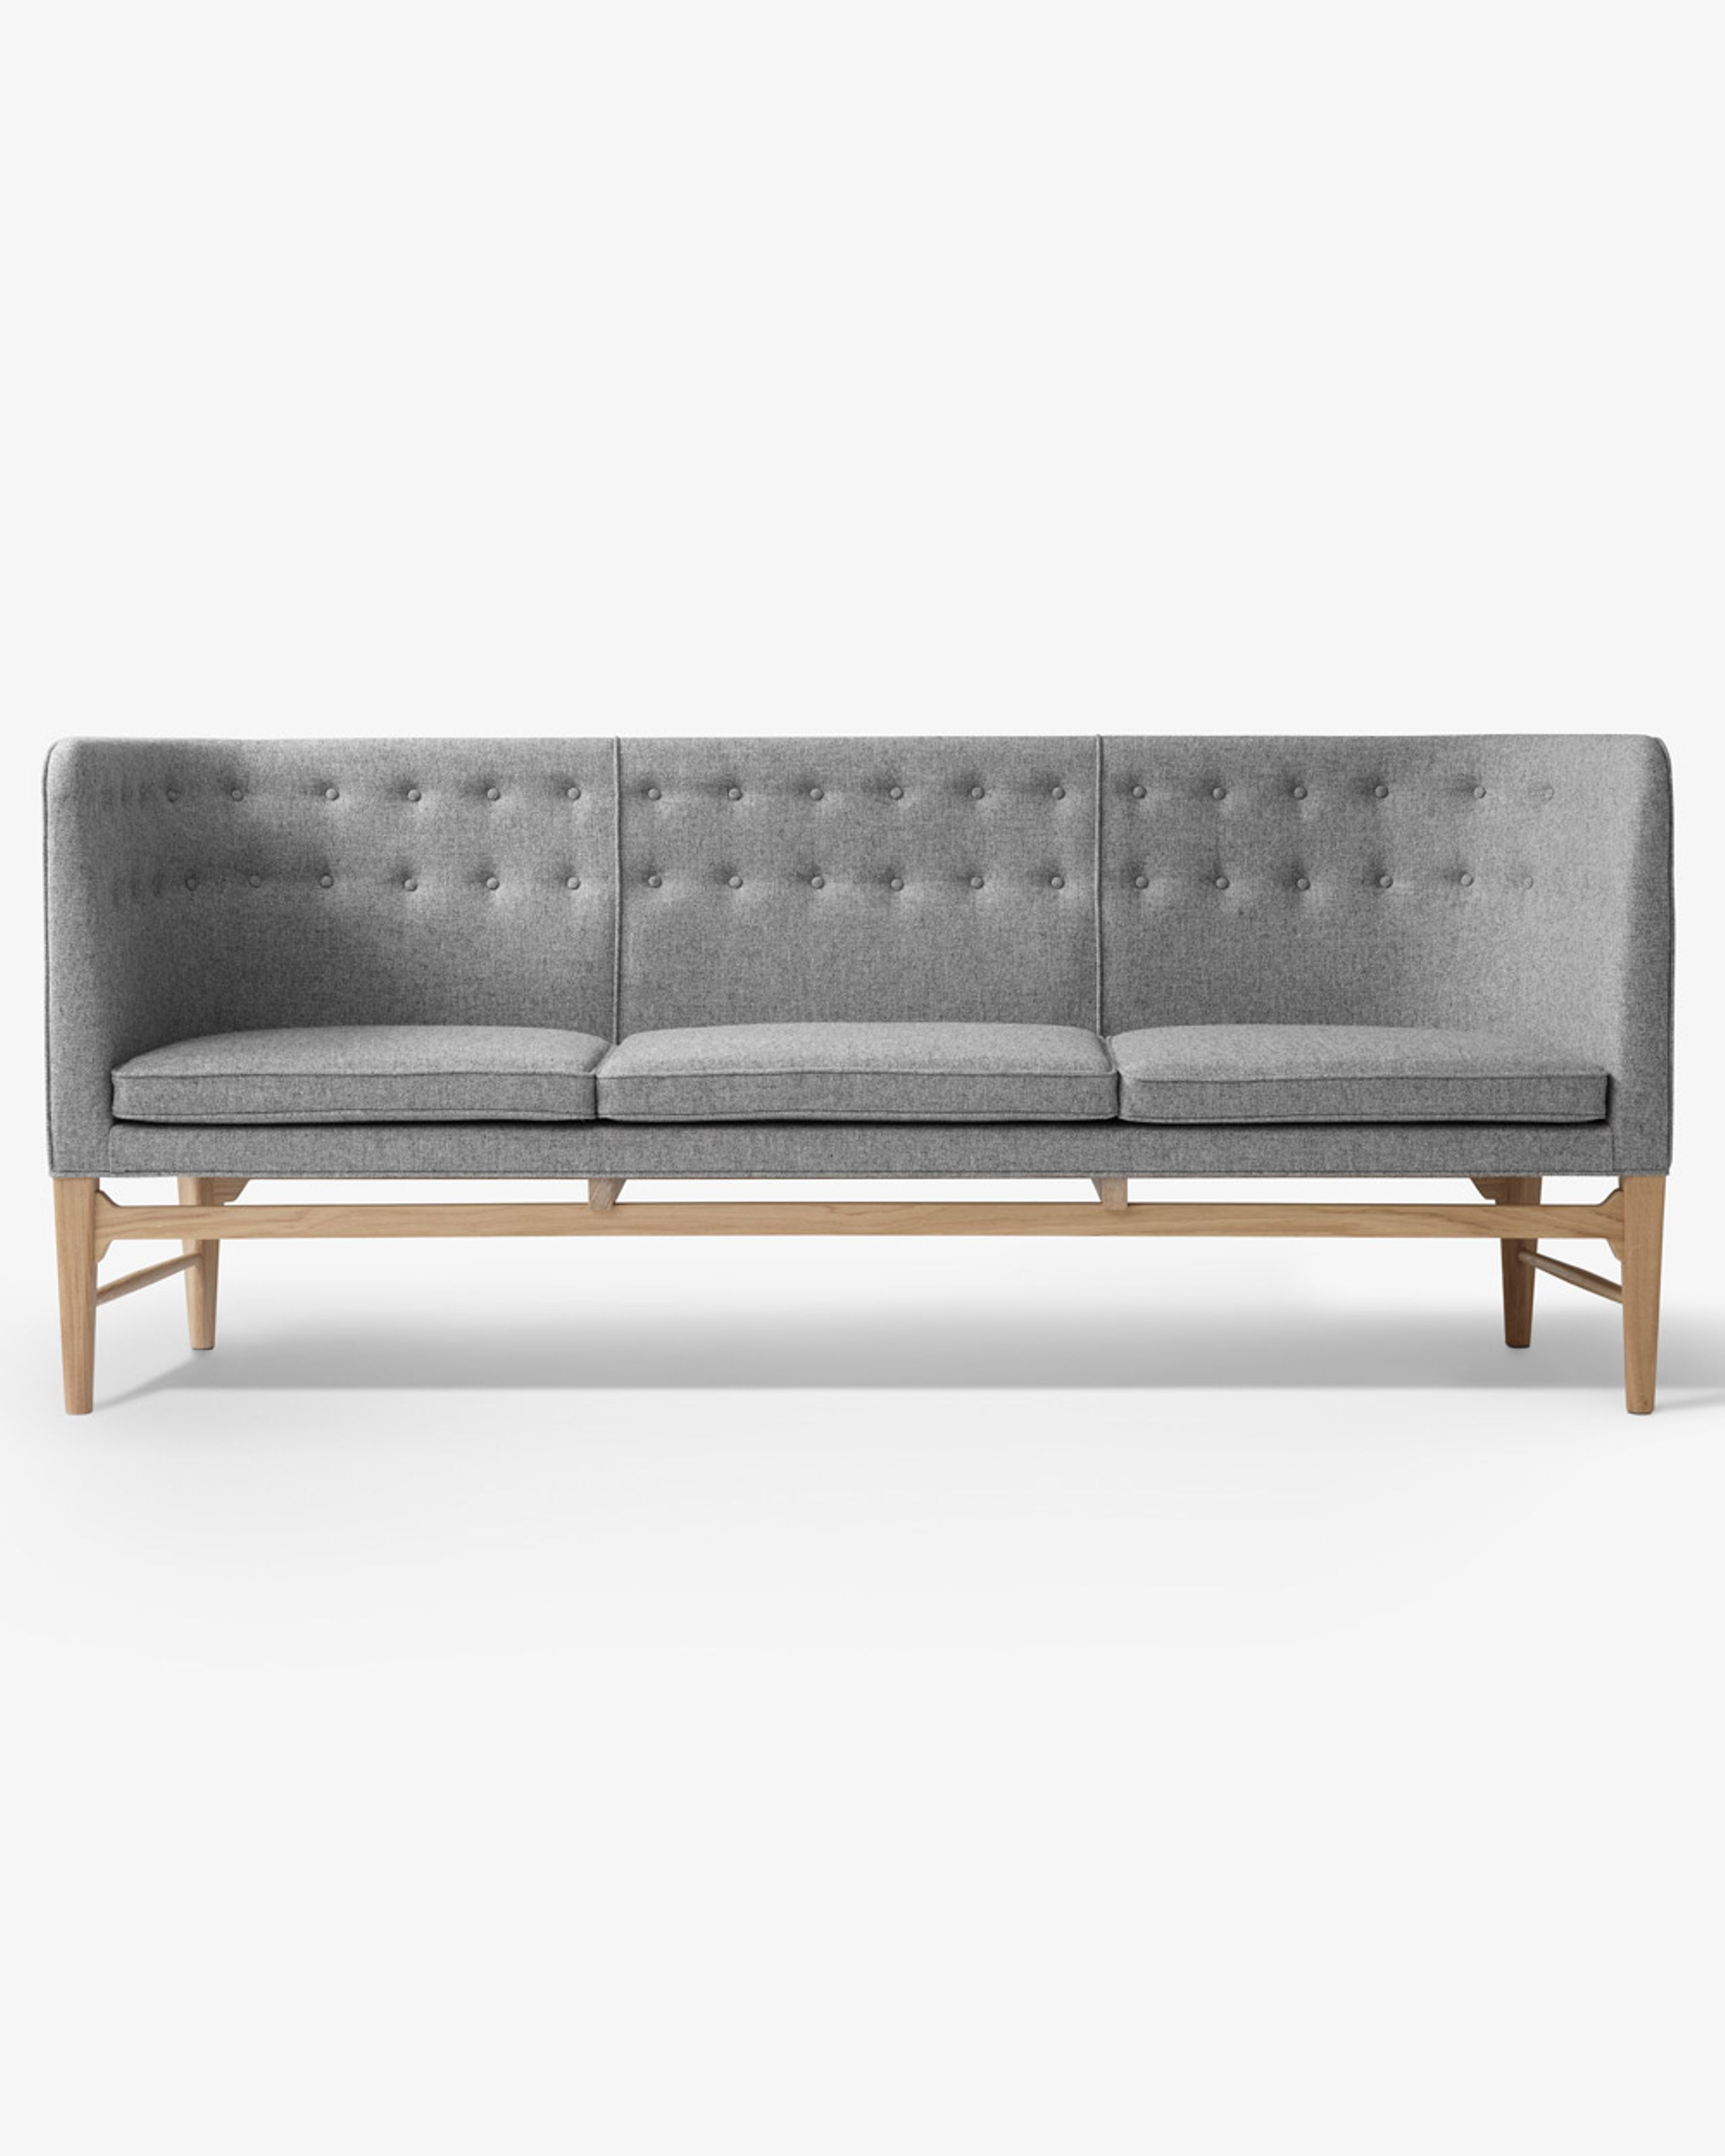 Image of   Mayor Sofa af Arne Jacobsen & Flemming Lassen / AJ5 / AJ6